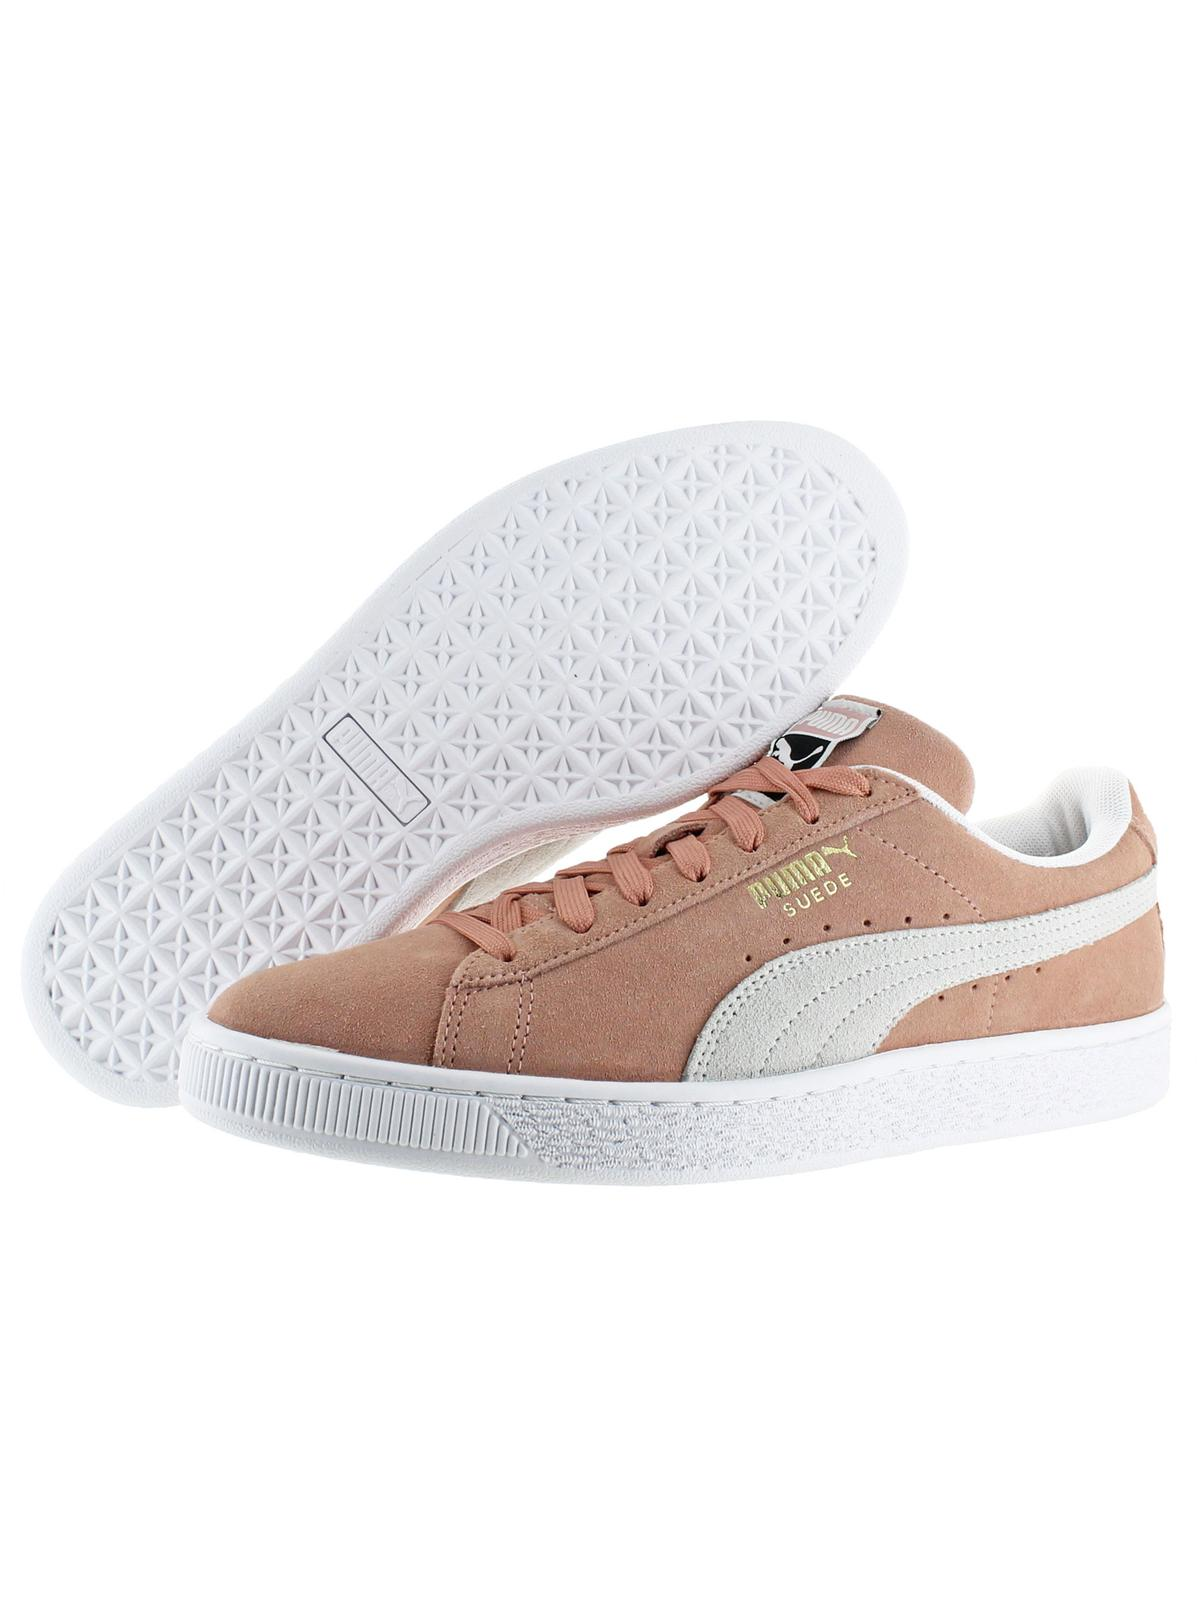 Puma Mens Suede Classic Round Toe Casual Fashion Sneakers